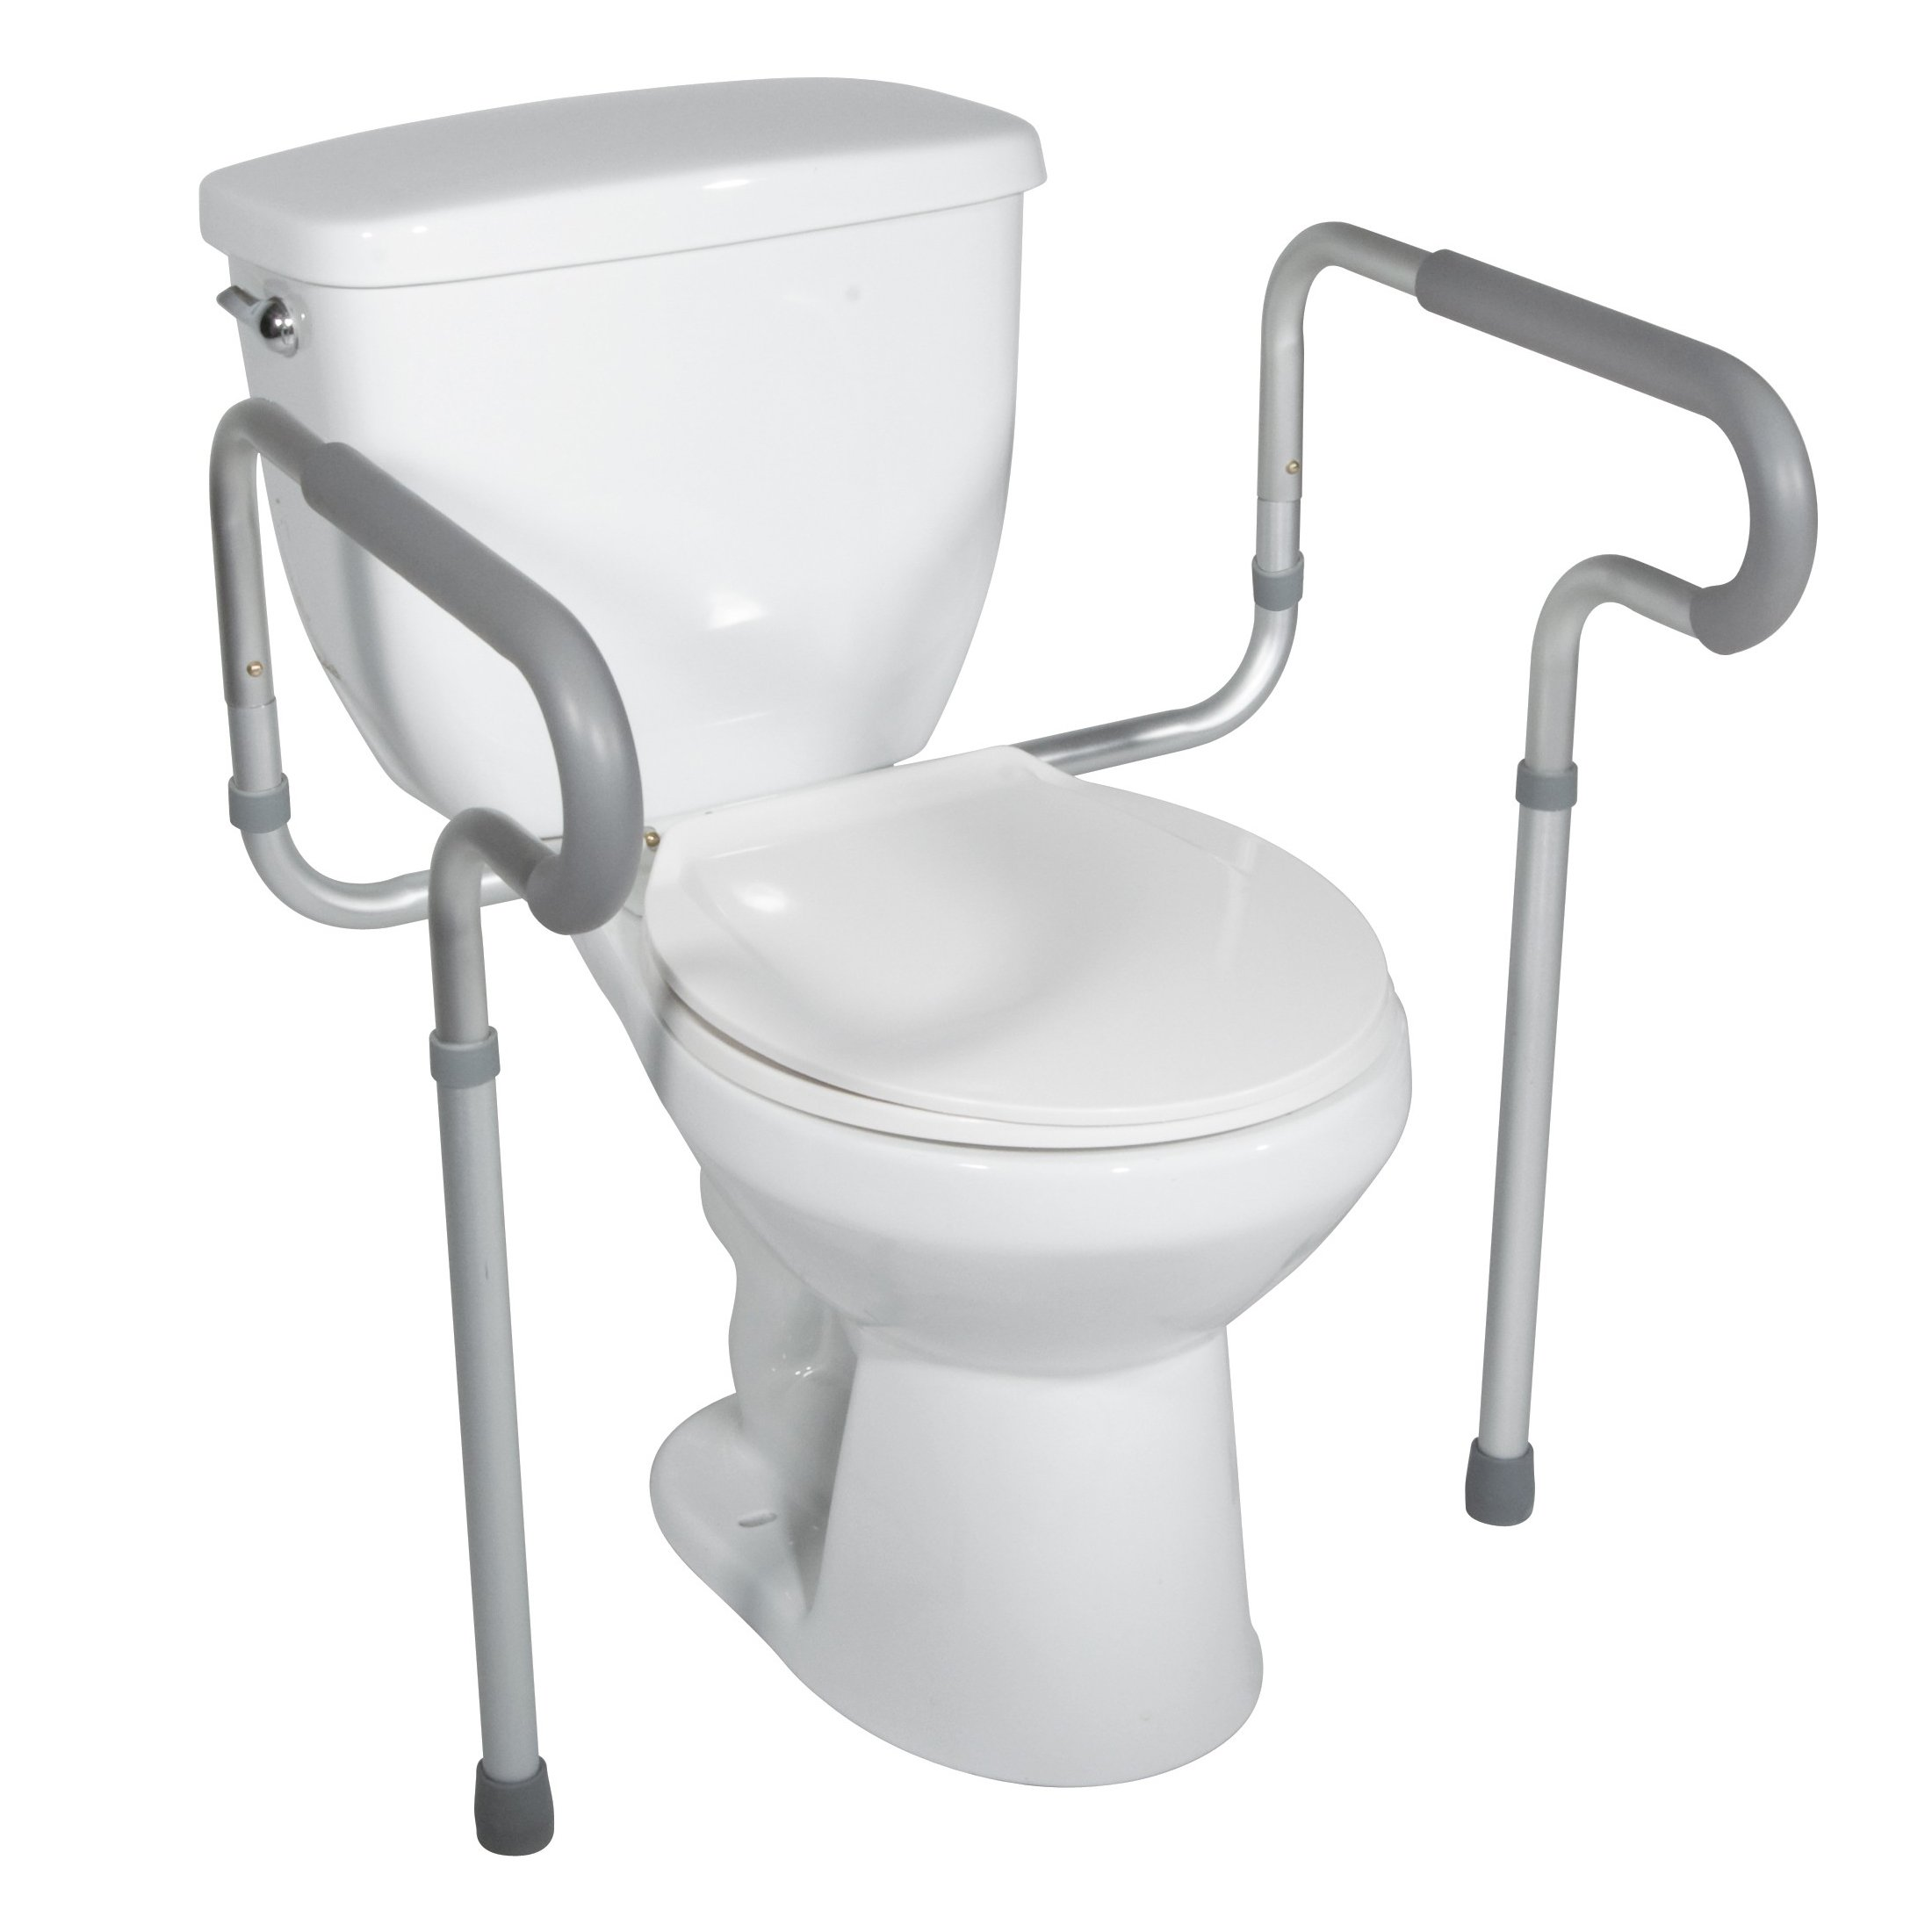 Outstanding Drive Toilet Safety Frame With Padded Arms Pabps2019 Chair Design Images Pabps2019Com